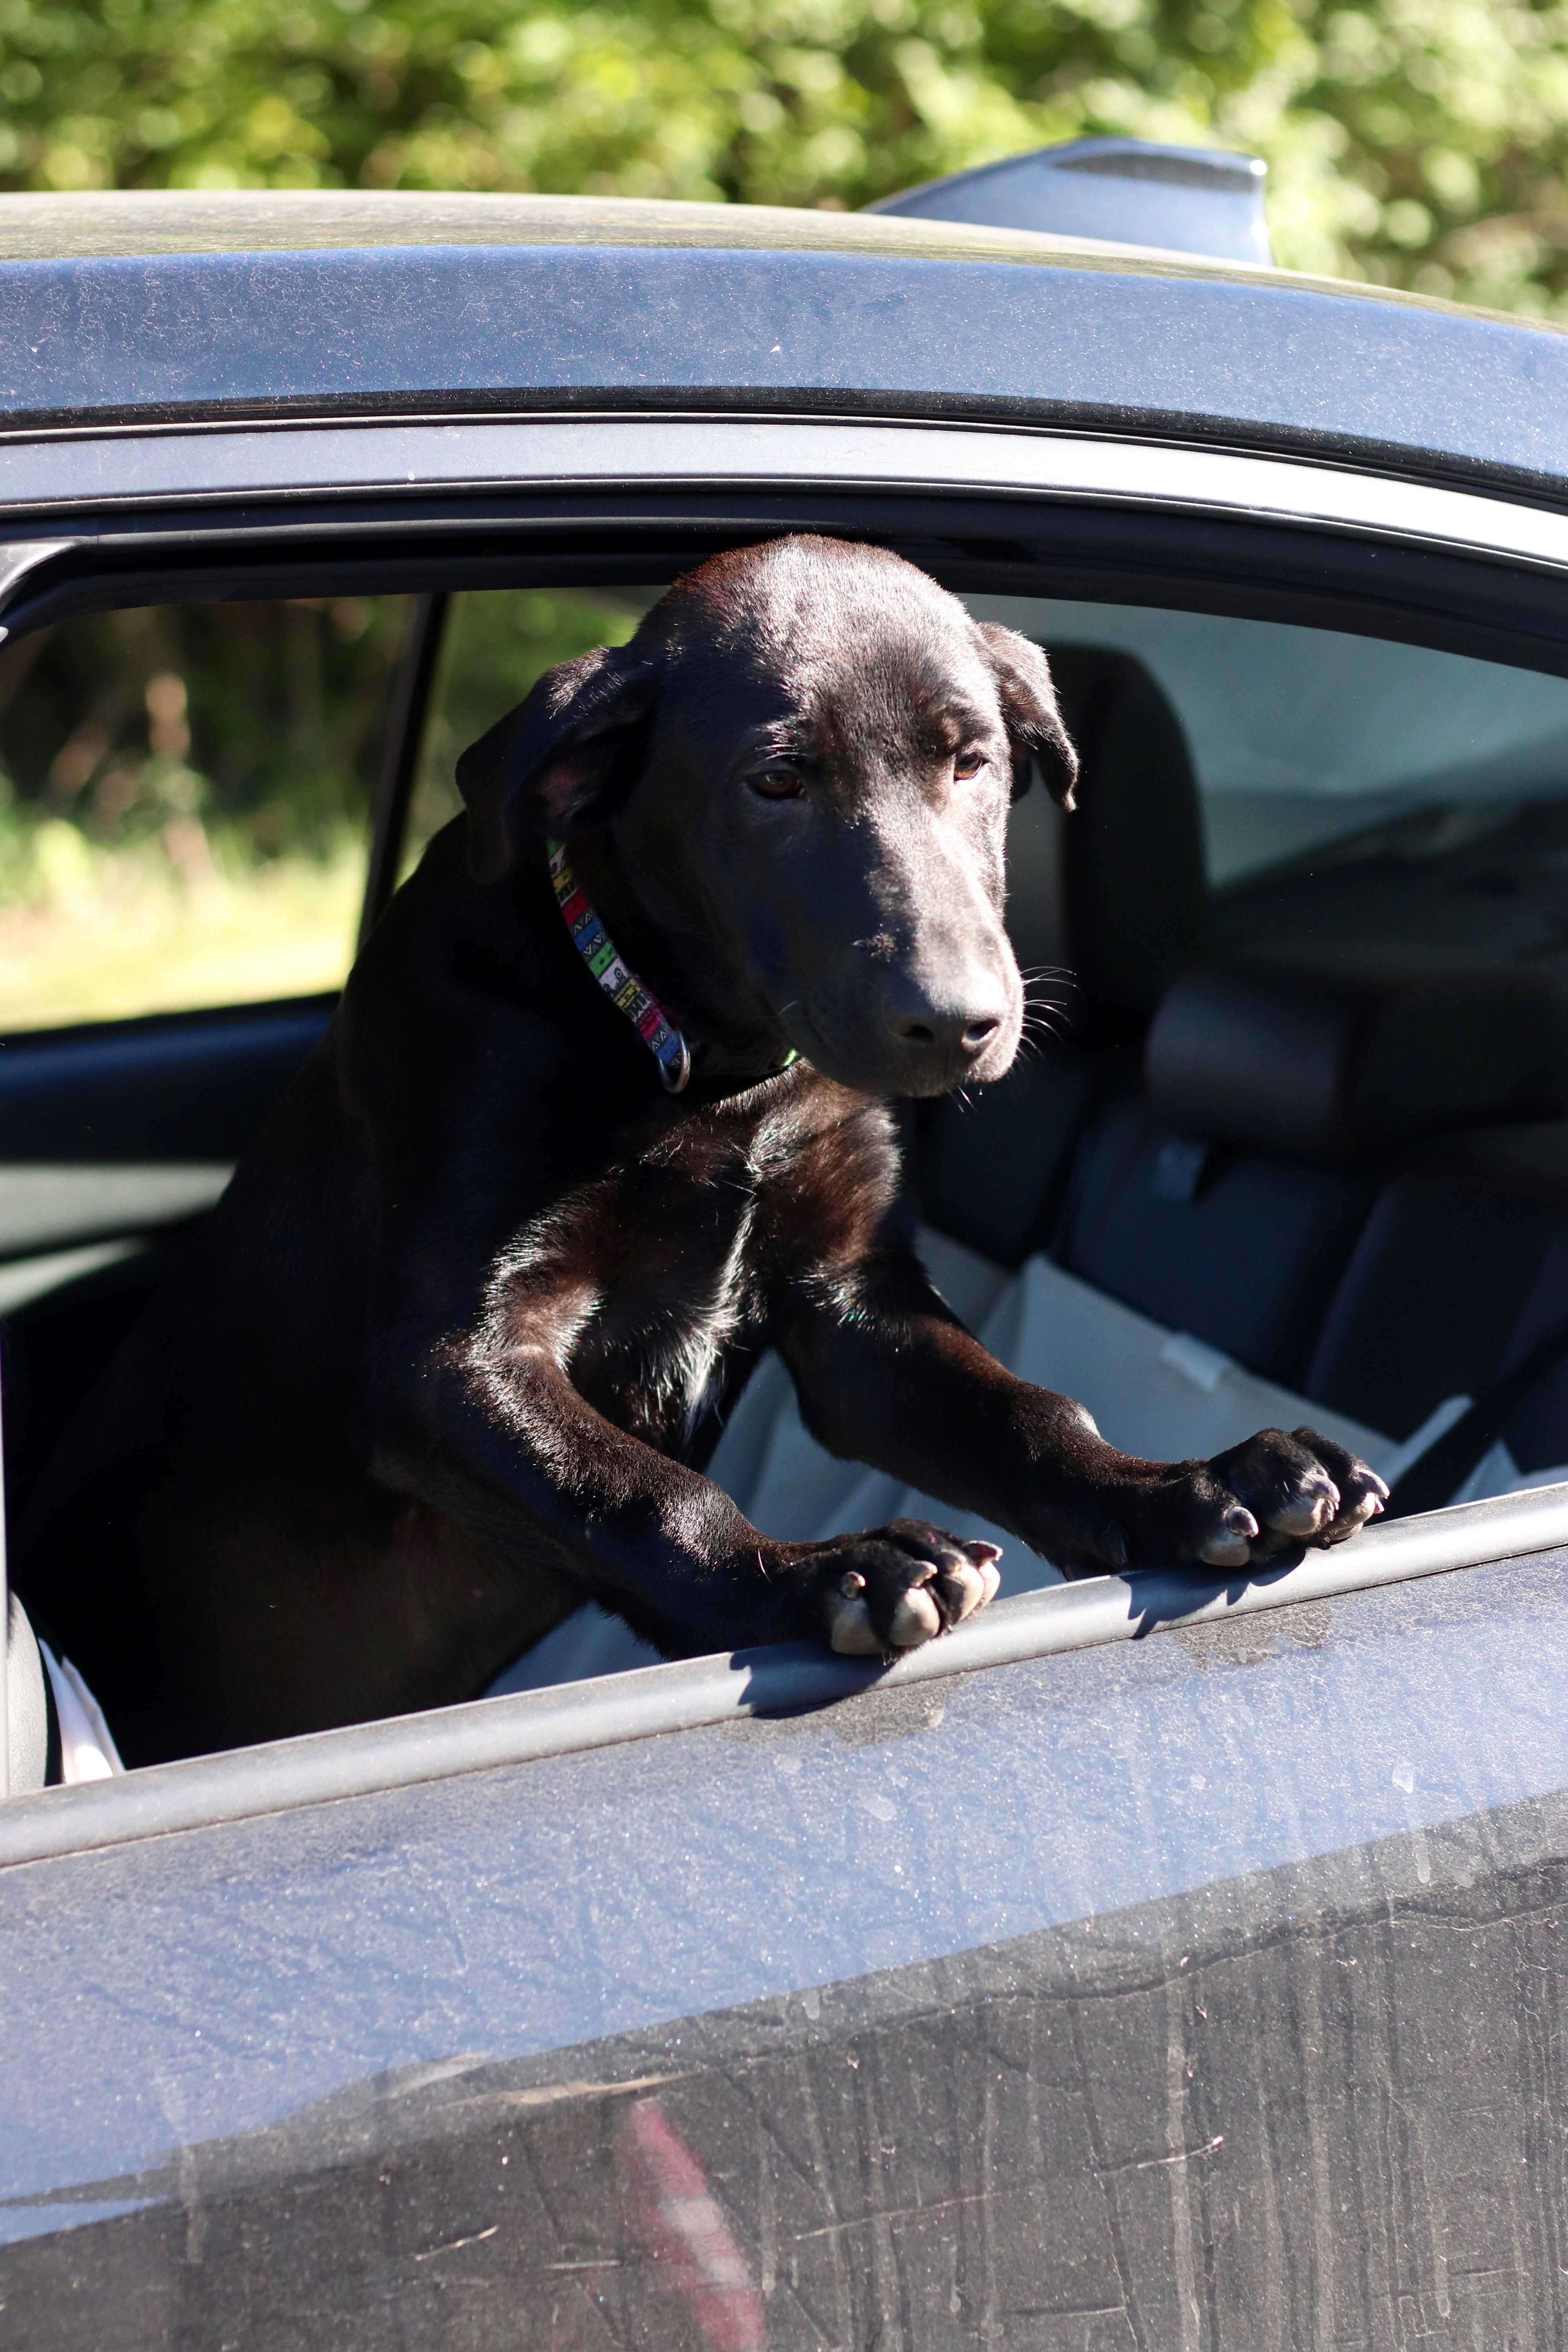 a Black Labrador puppy holding its head out of a car window